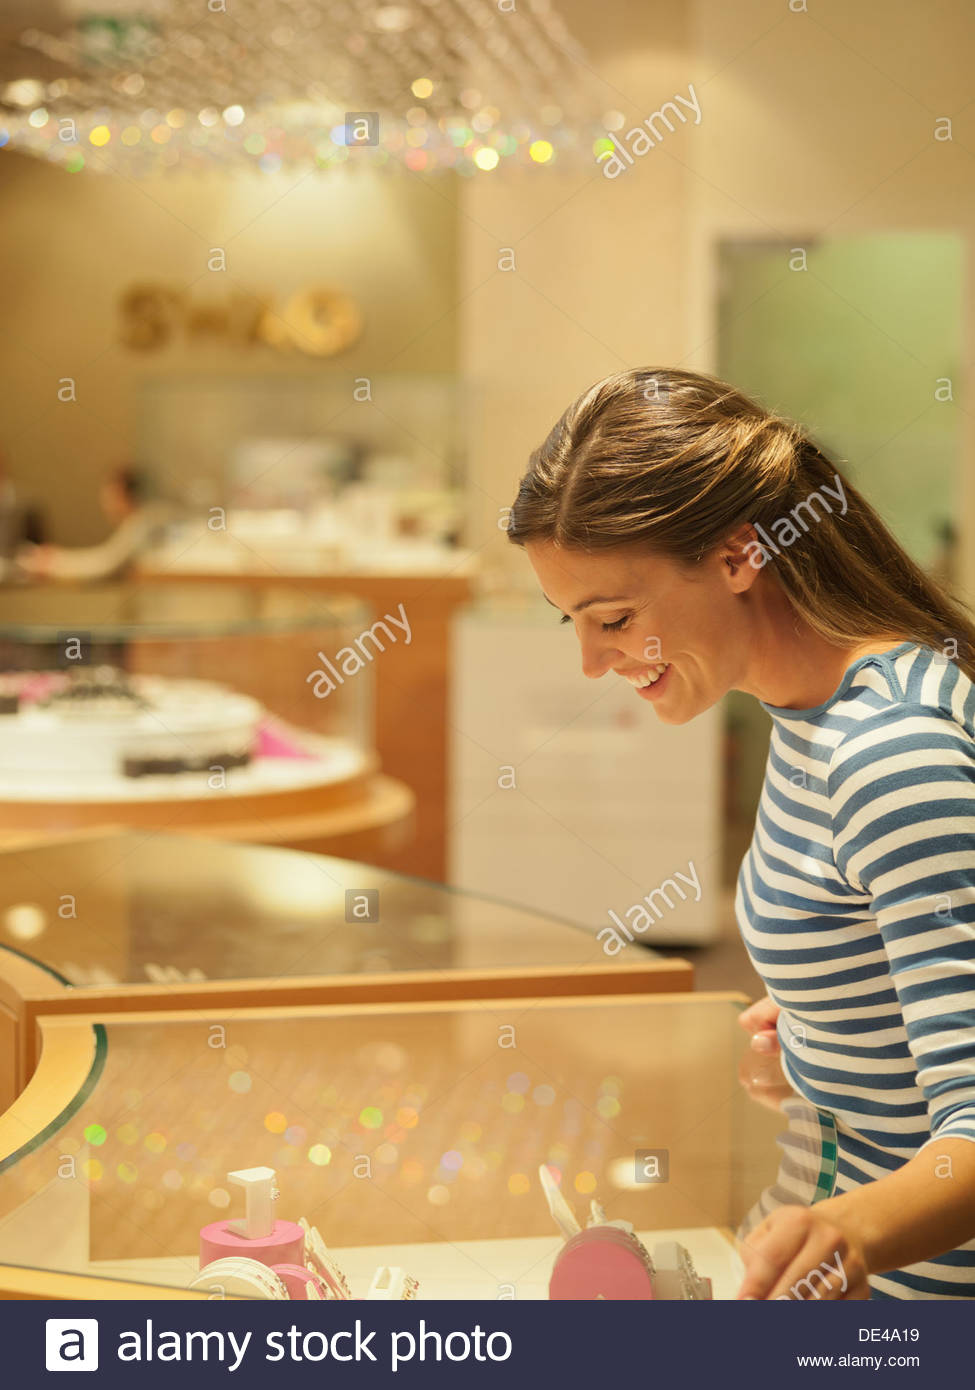 Smiling woman looking at jewelry in display case - Stock Image